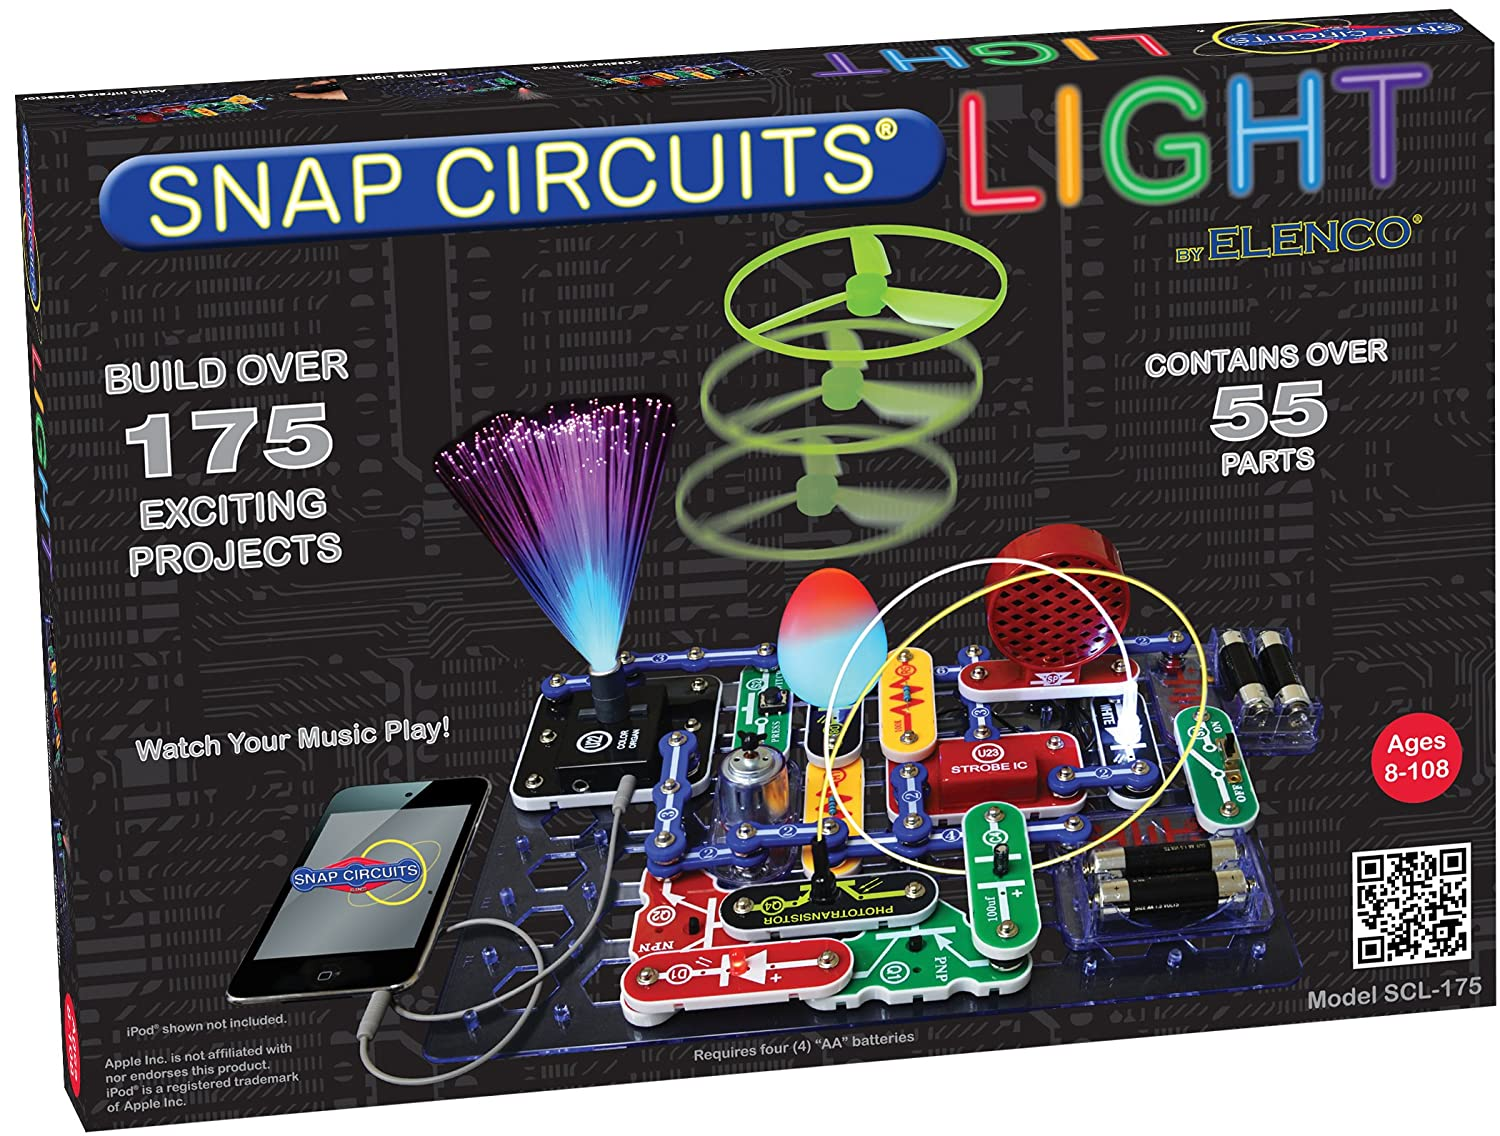 Shadow Alarm Hobby Circuits And Projects Snap Scl 175 Lights Electronics Exploration Kit Over Exciting Stem 4 Color Project Manual 55 Modules